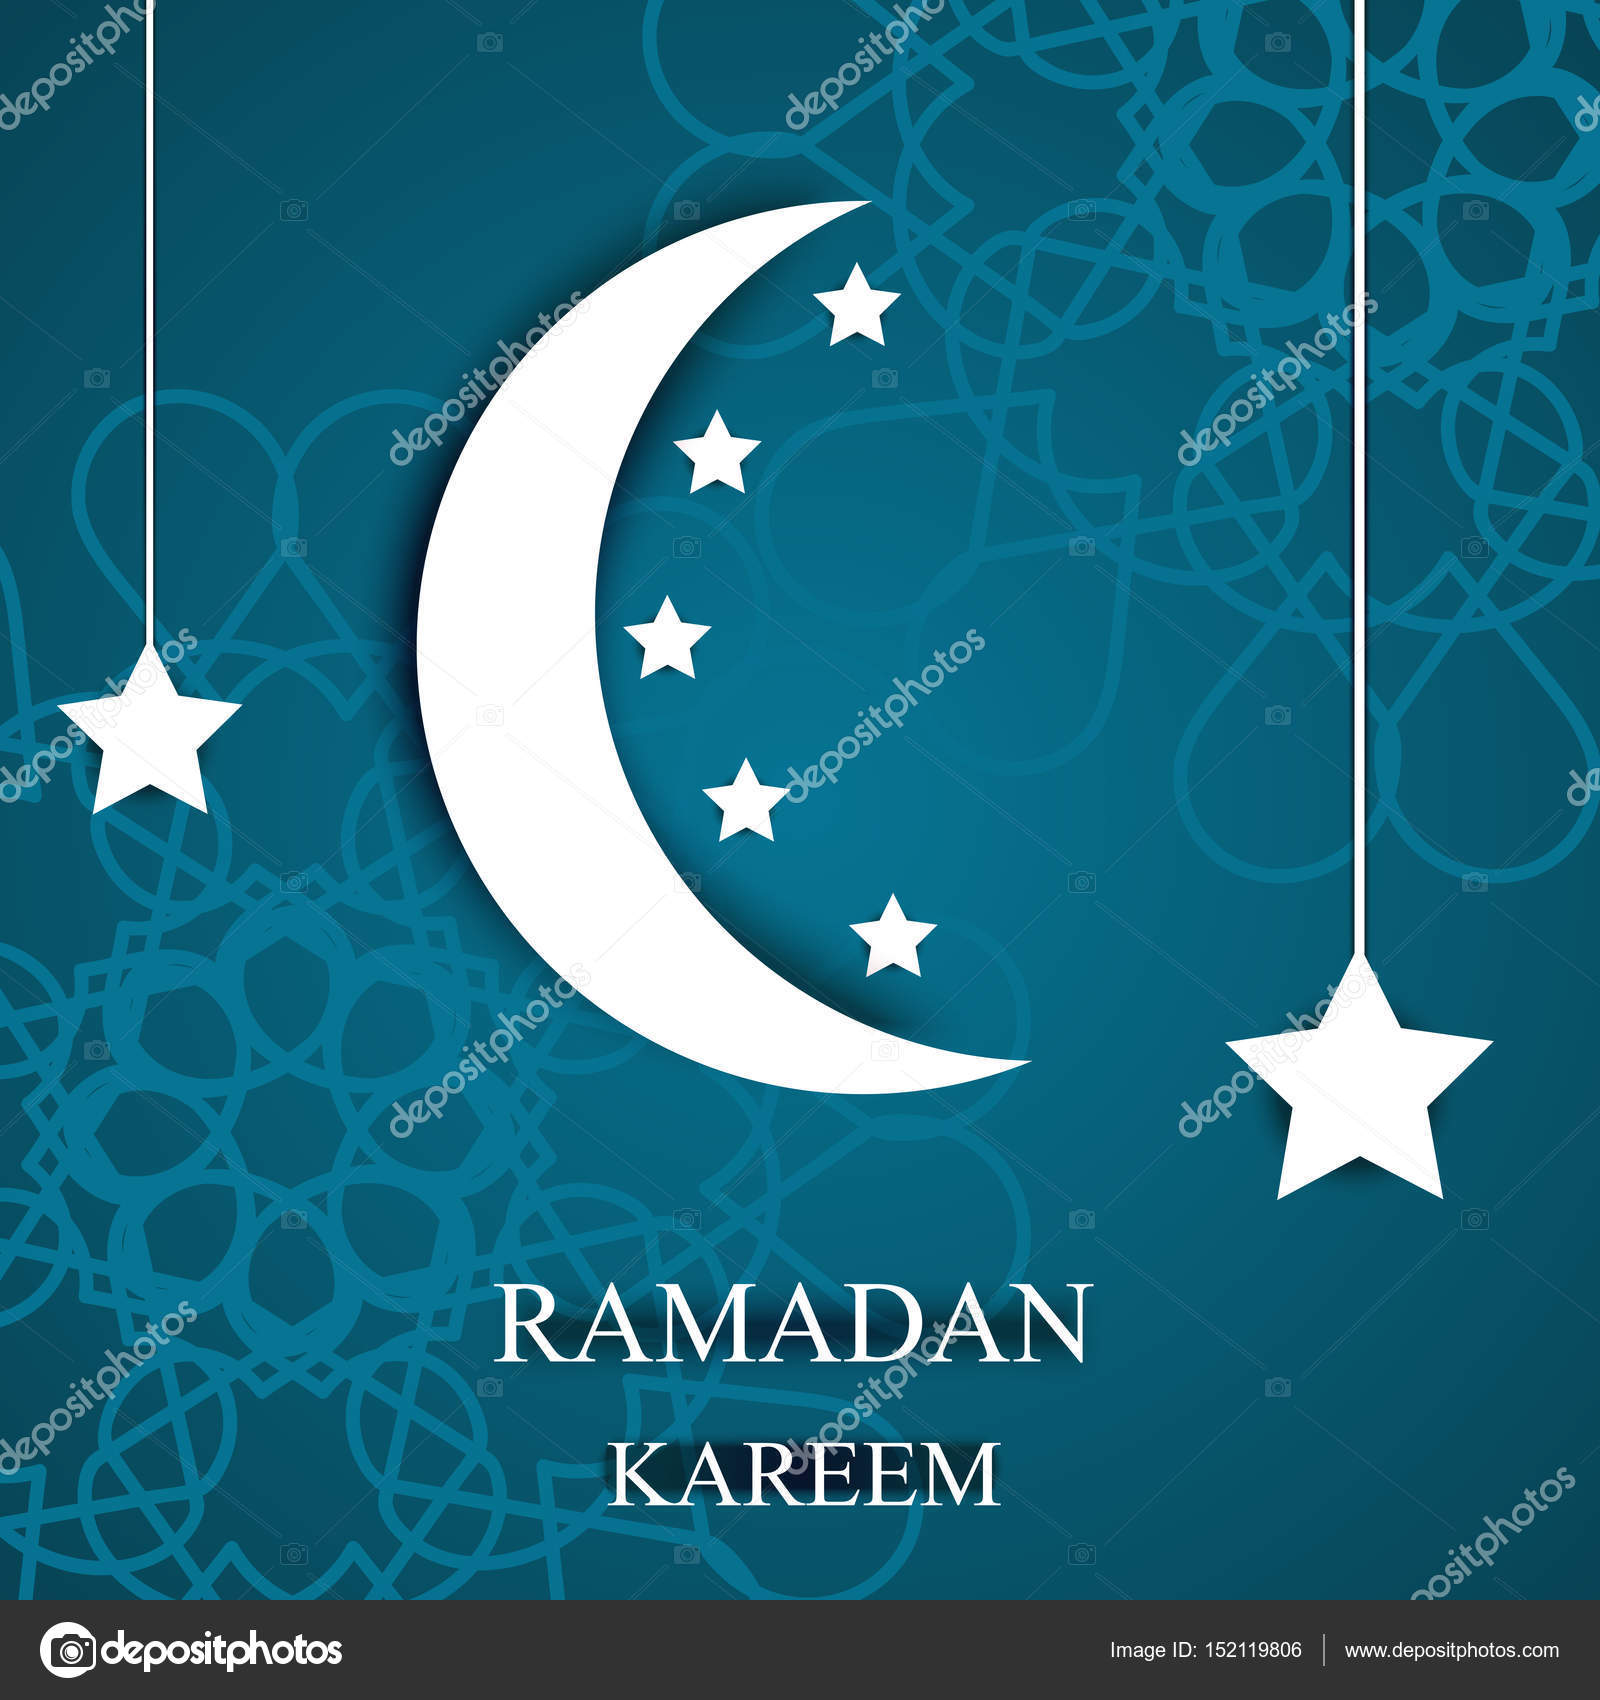 Greeting card invitation for a ramadan kareem 3d style cut greeting card invitation for a ramadan kareem 3d style cut from paper moon kristyandbryce Image collections